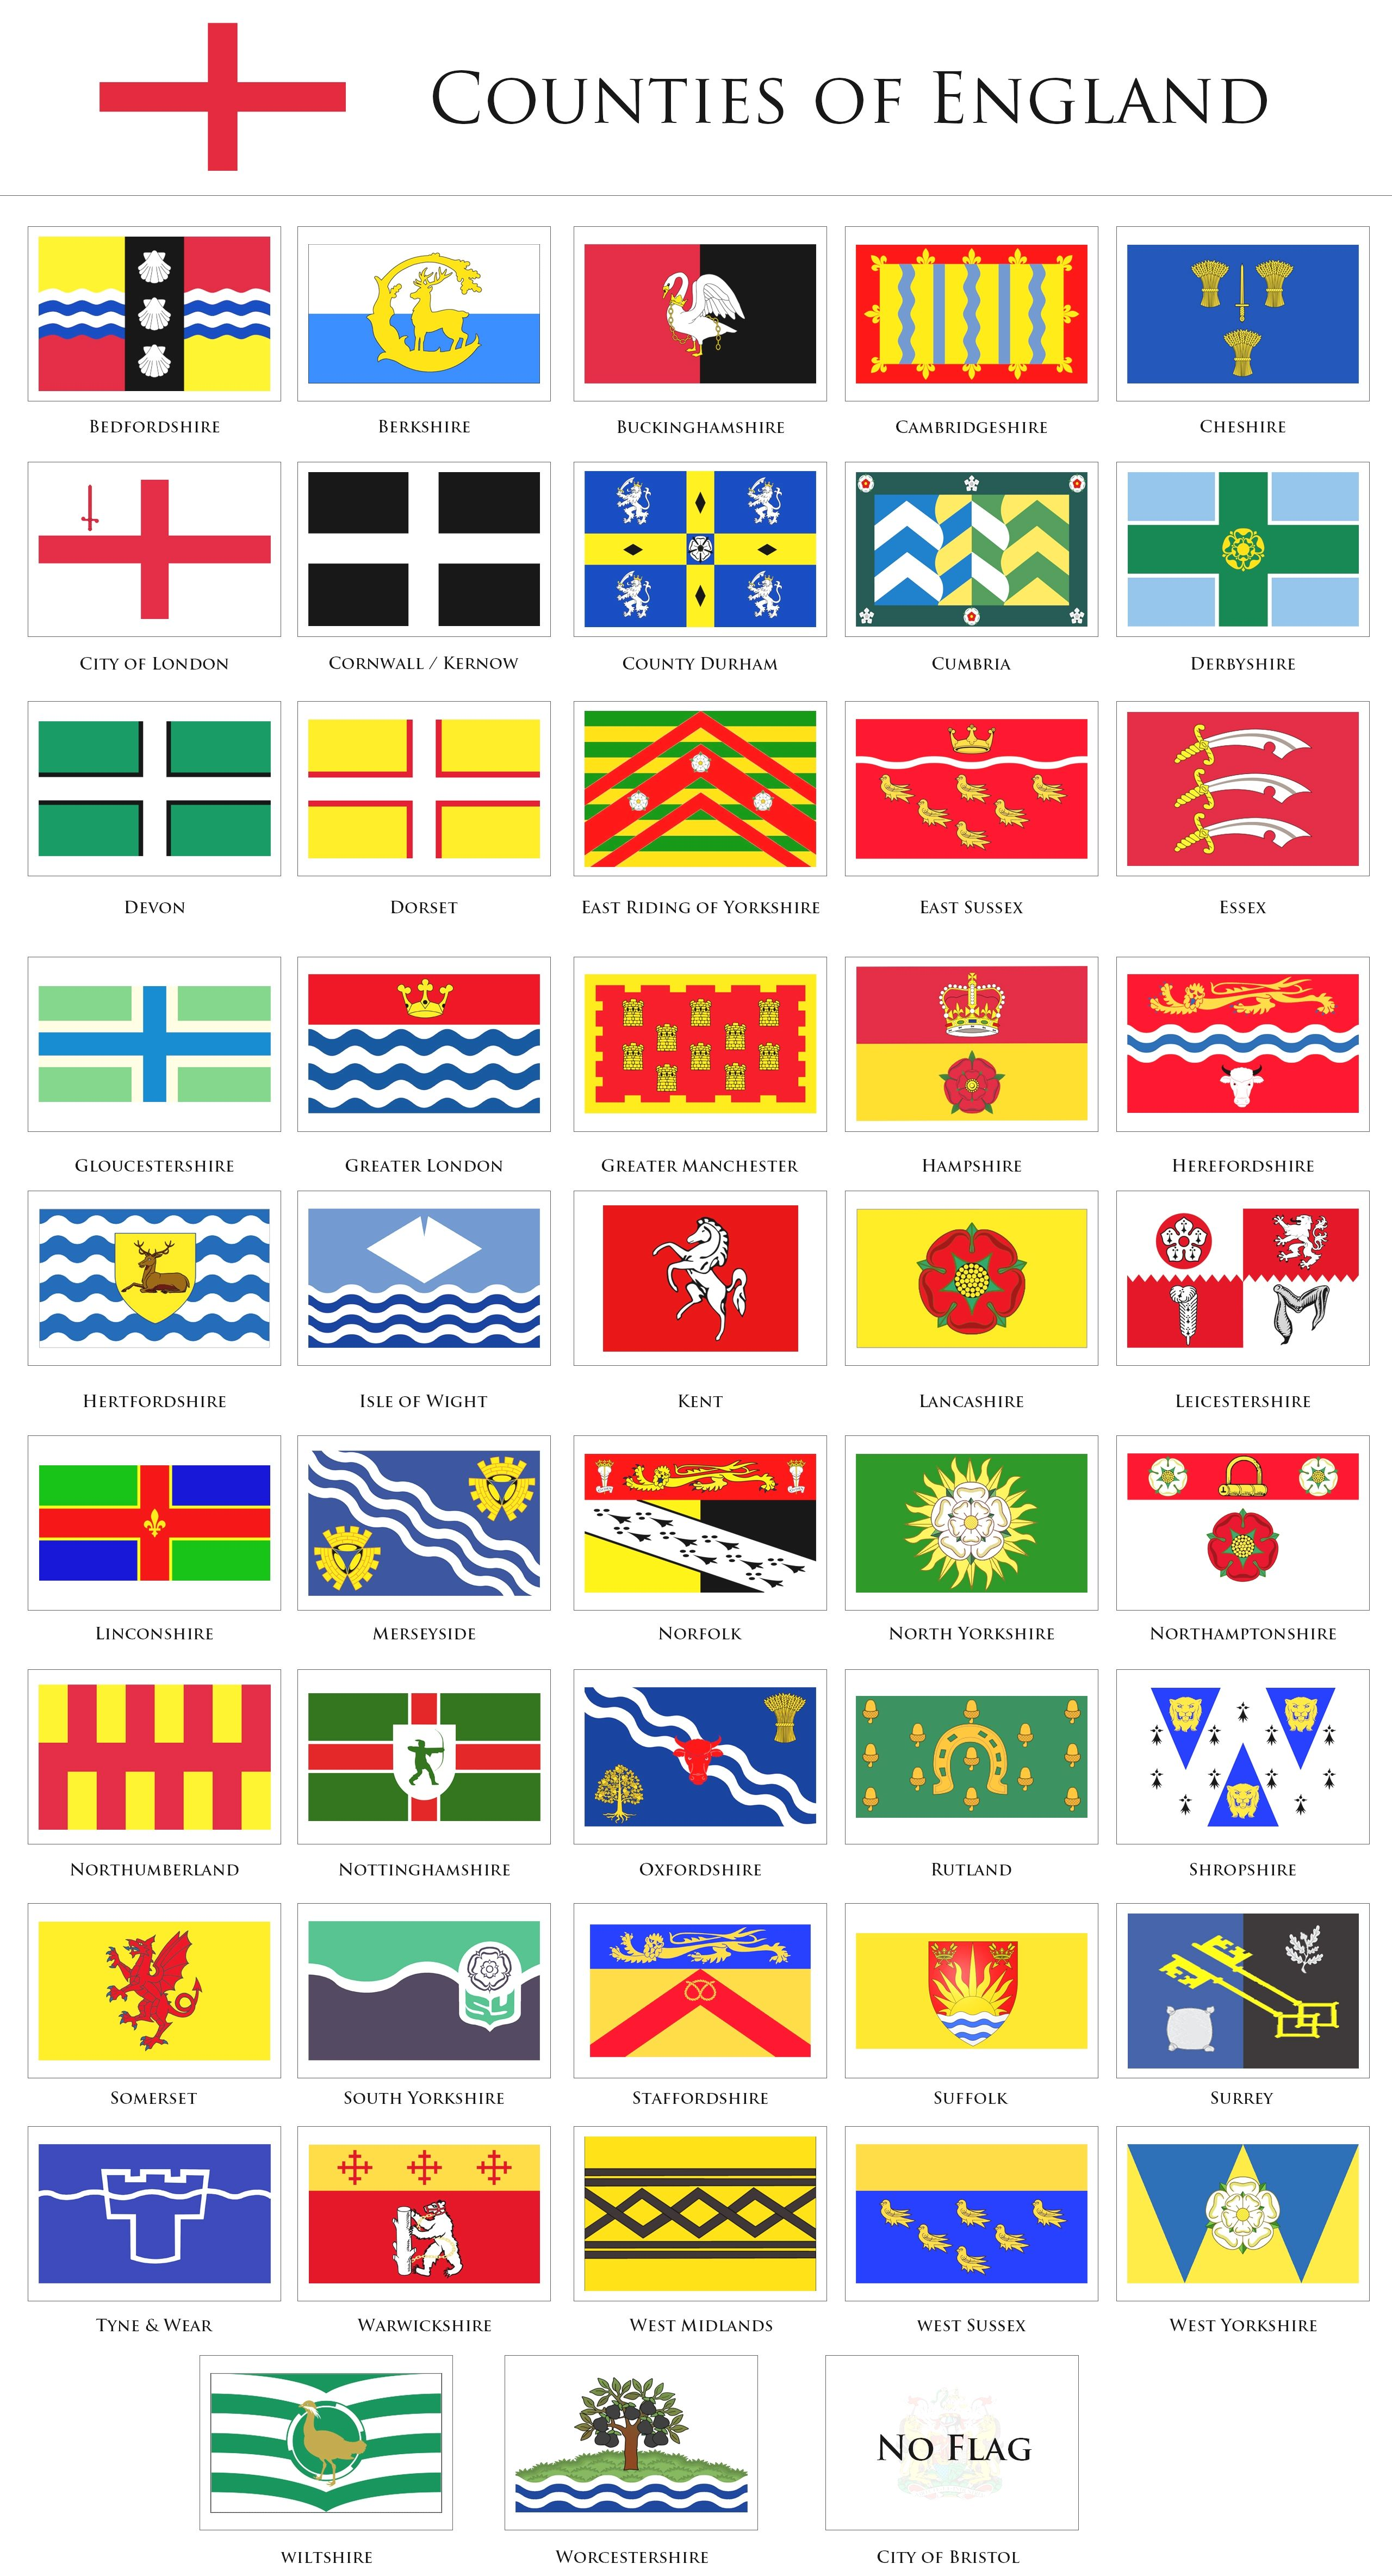 United Kingdom Flag 3558 Trip Traveler Places United Kingdom Fa Adgang Til Webstedet For At Fa Oplysninger Bea Counties Of England County Flags Flag